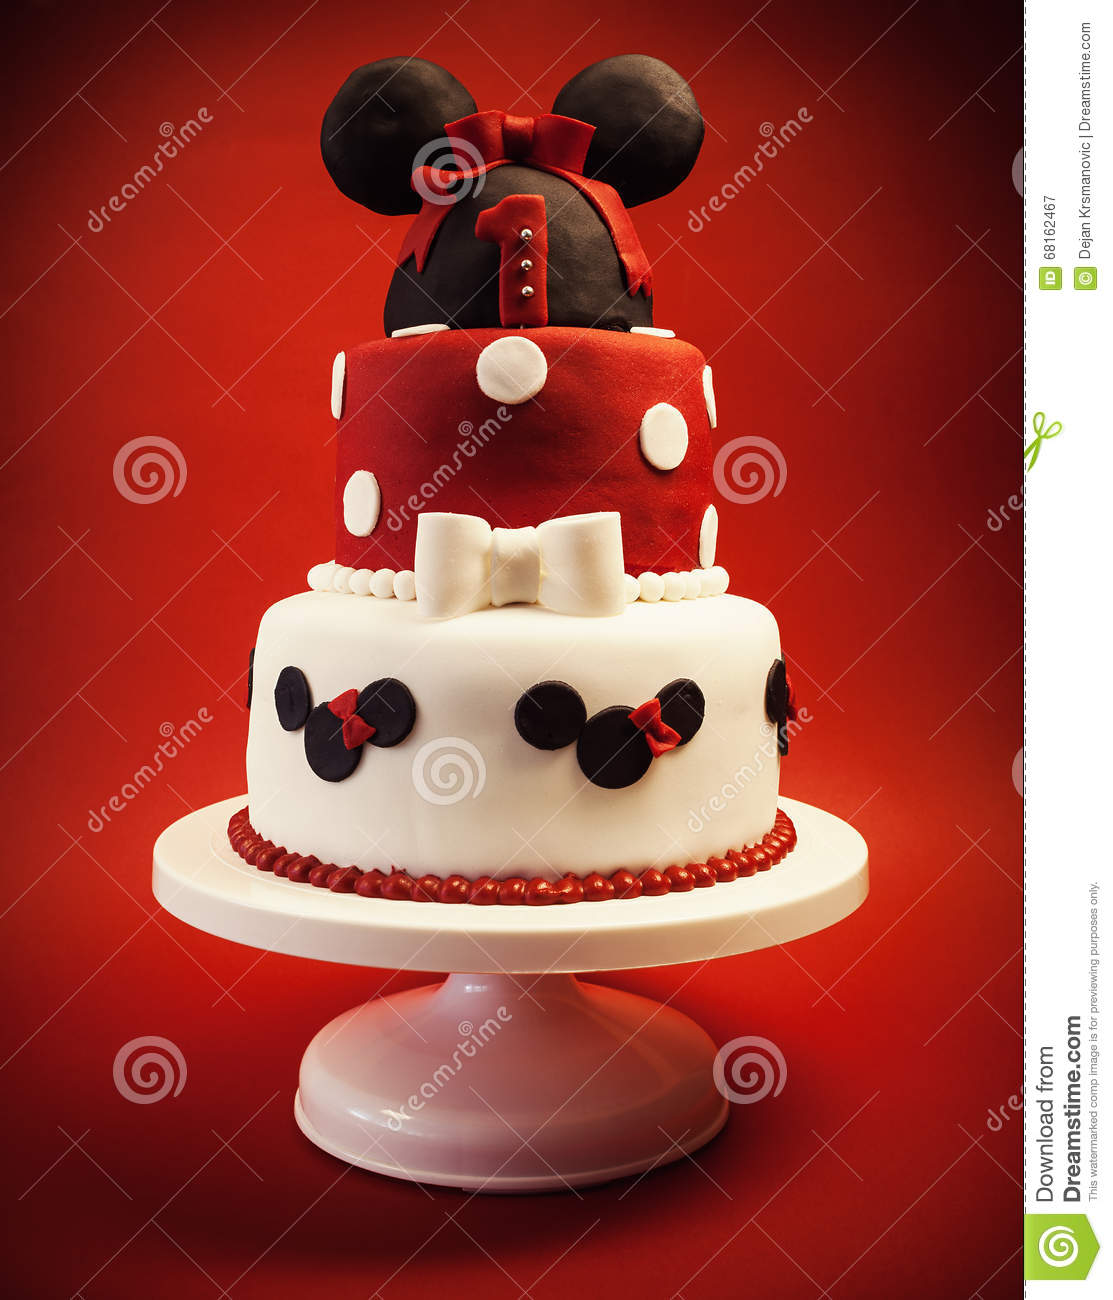 Birthday Cake For Baby Girl Stock Image Image Of Birthday Life